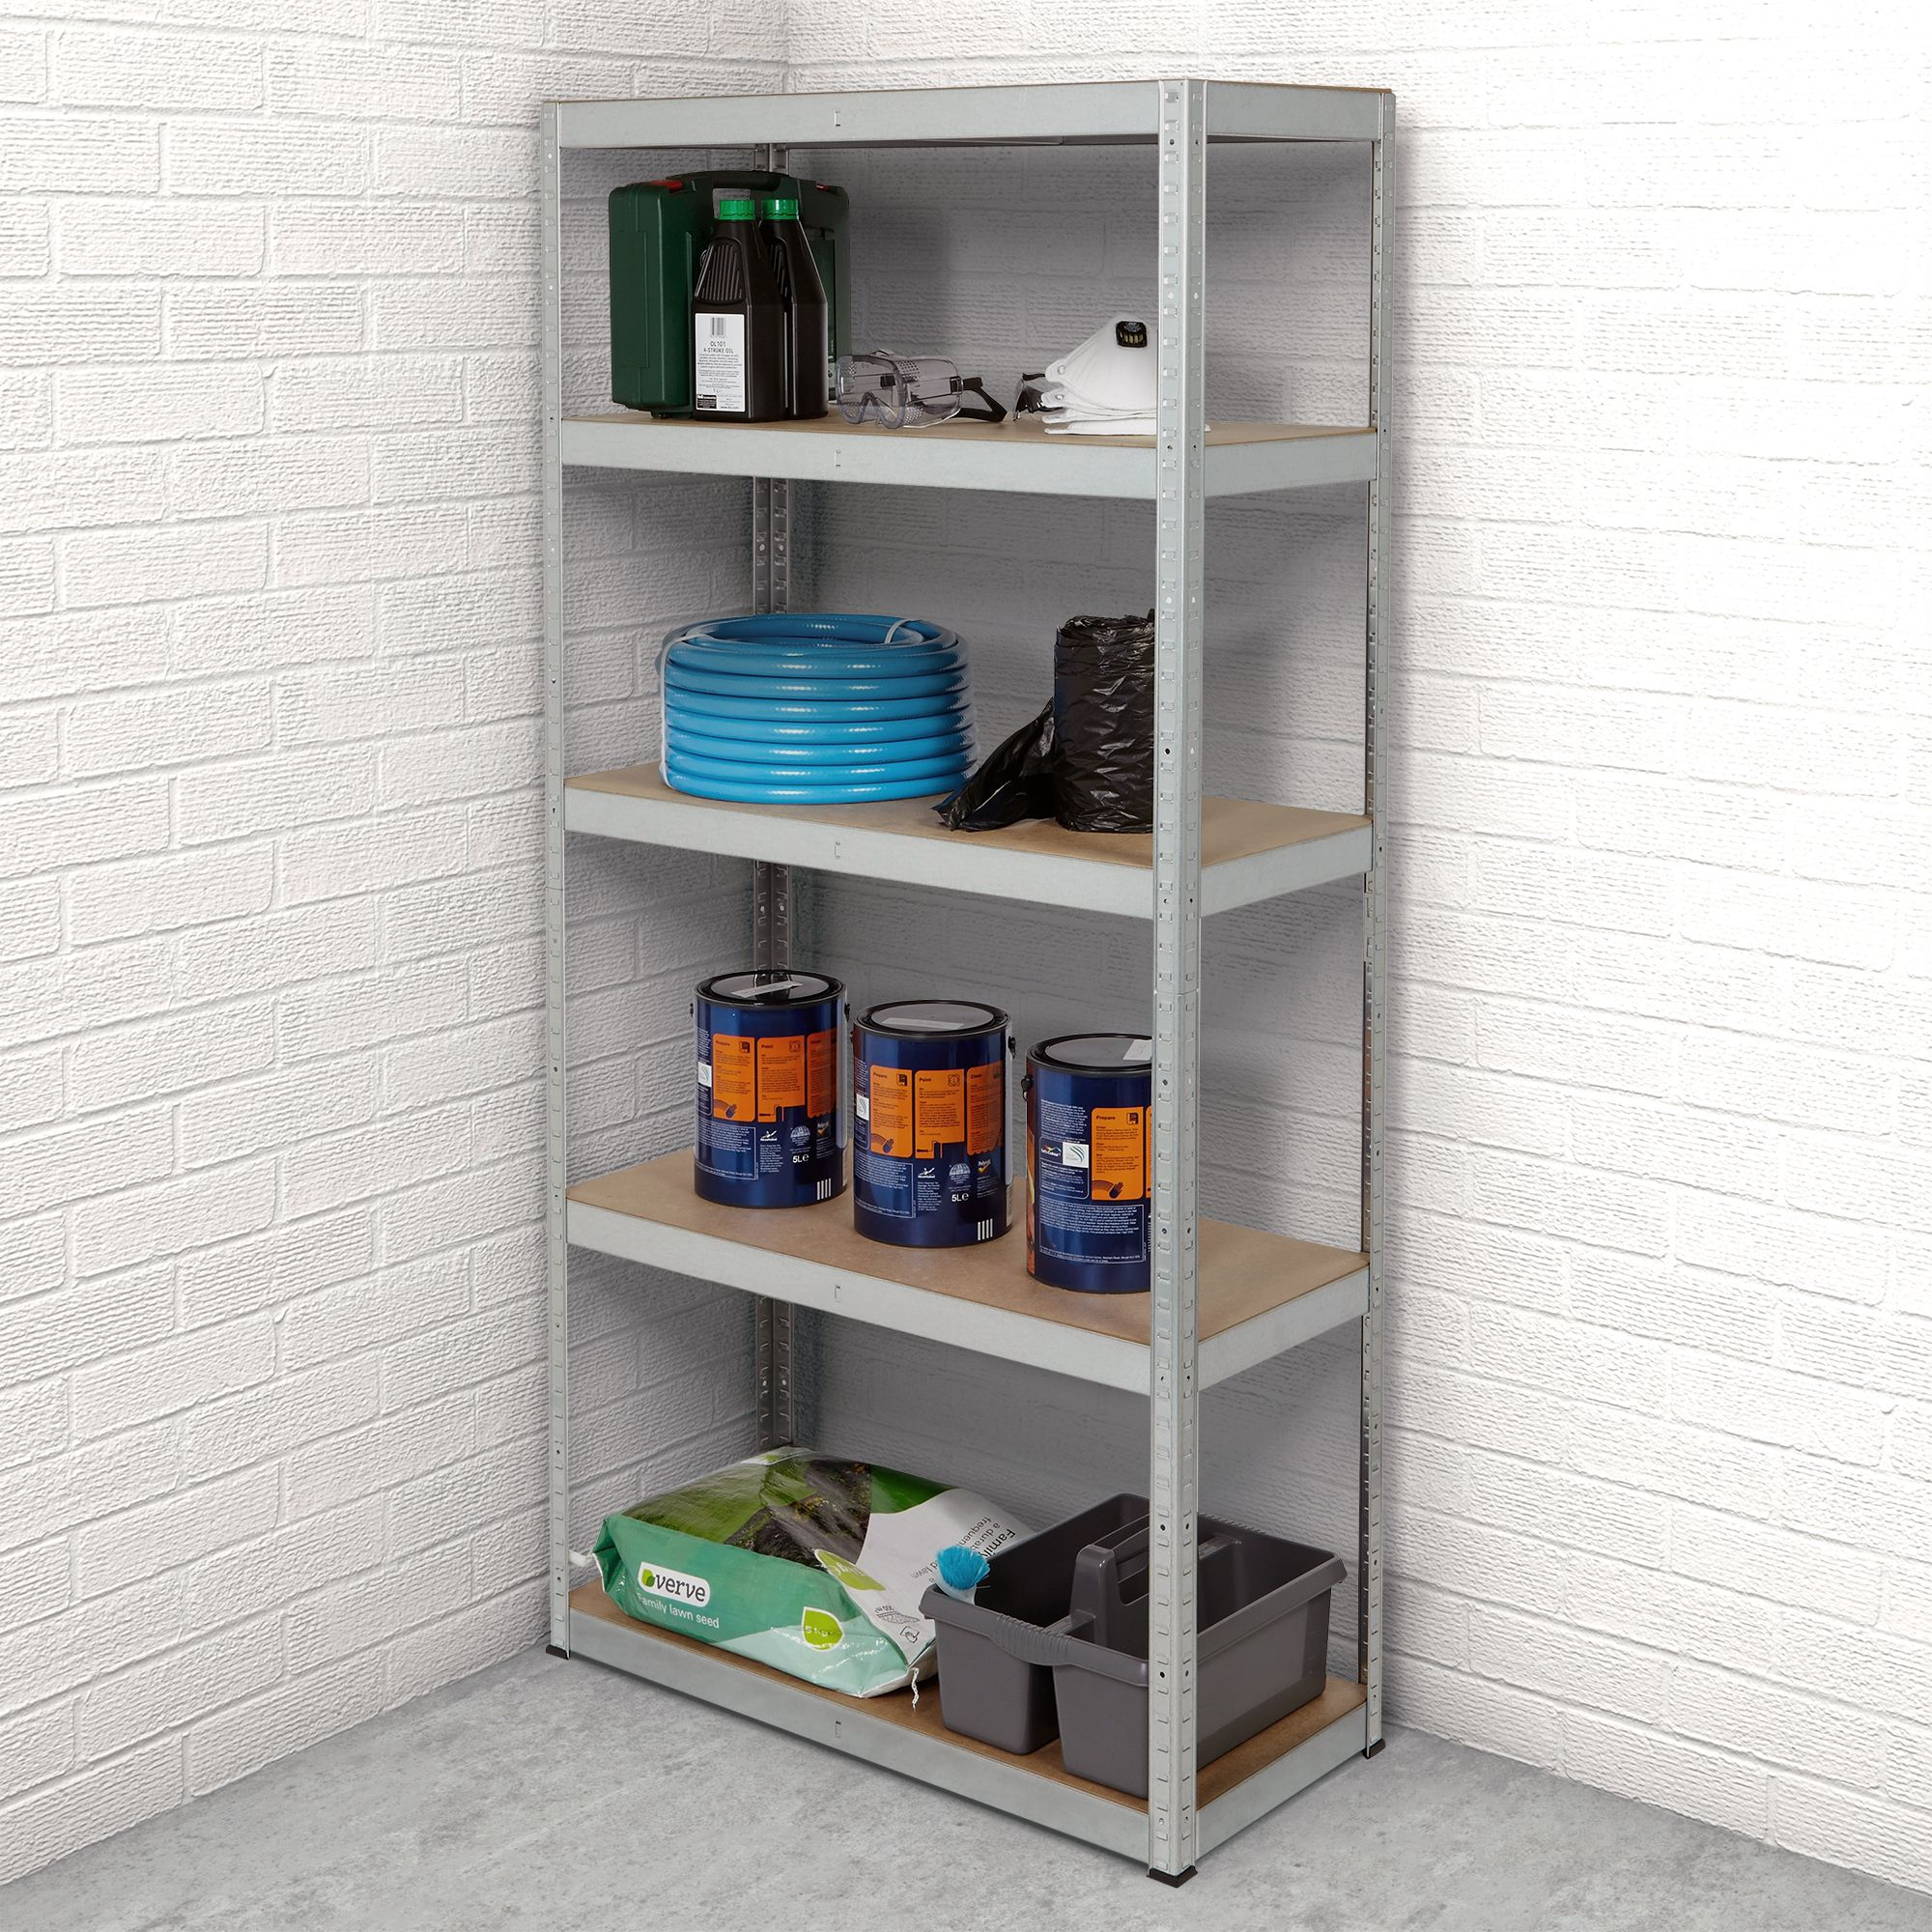 Shop Garage Storage. Metal Shelving Units : garage storage units  - Aquiesqueretaro.Com